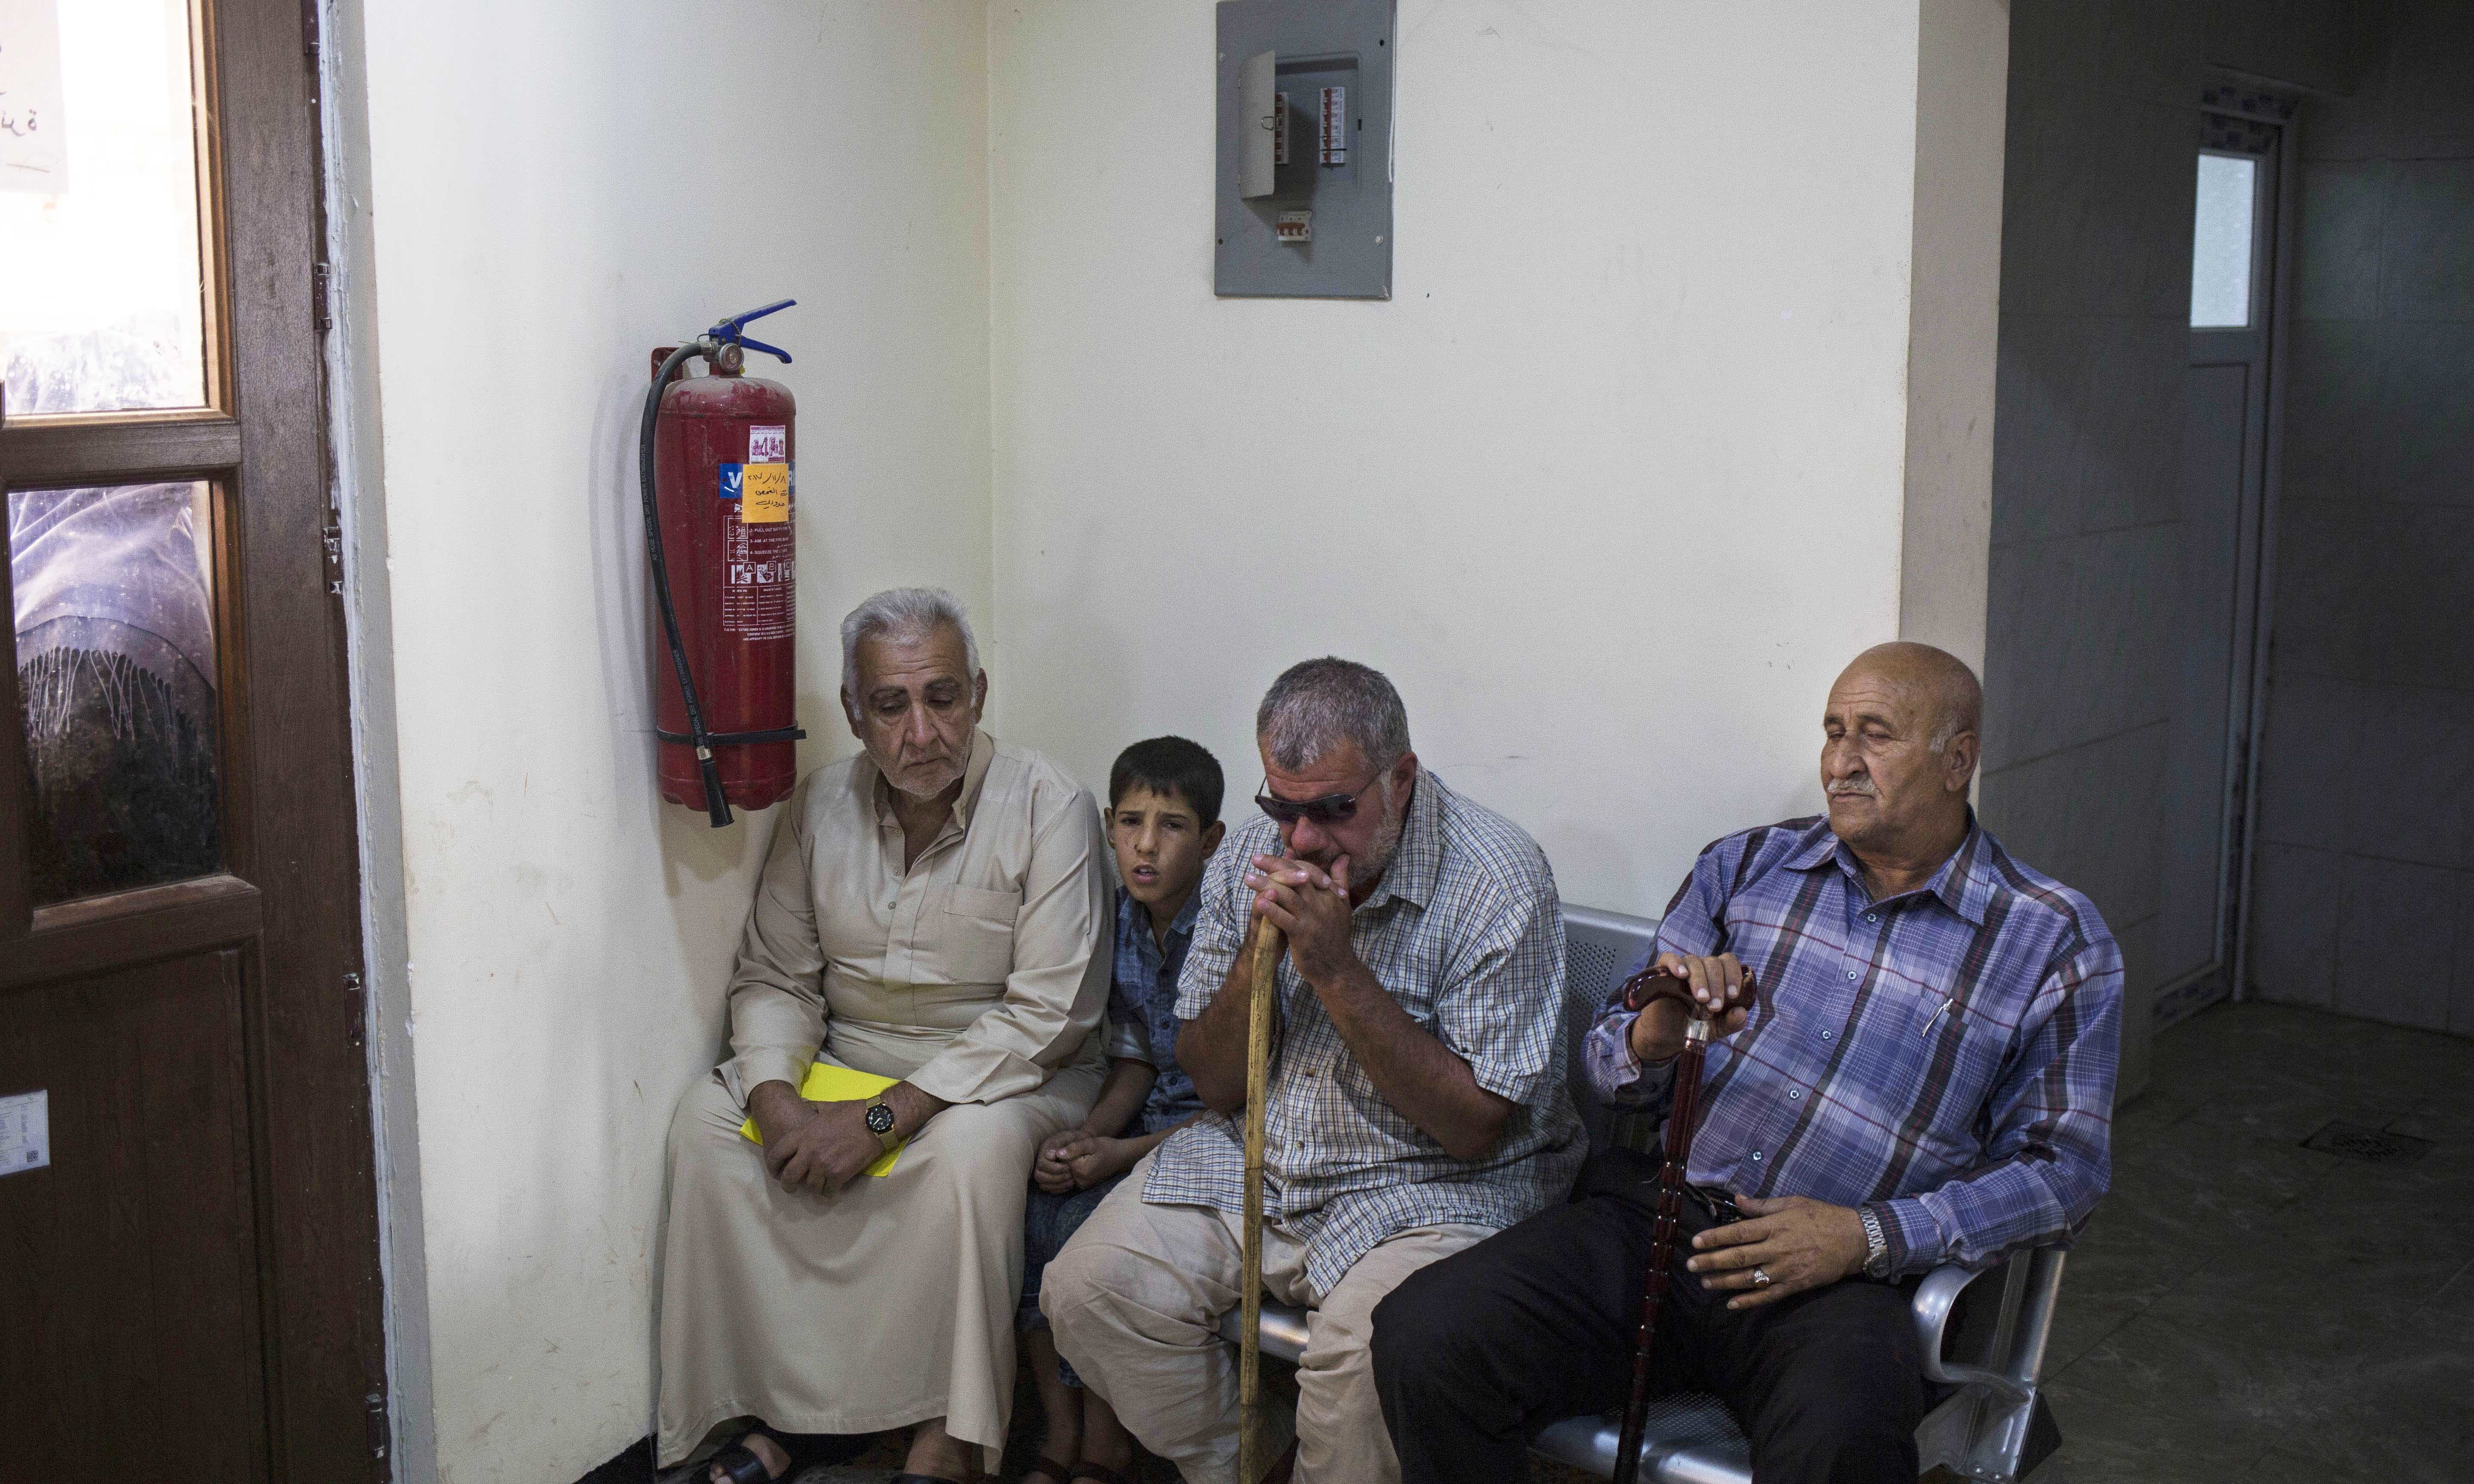 In this Oct. 10, 2017 photo Mosul residents sit inside the waiting room of the morgue in Mosul to pick up death certificates of their relatives. —AP